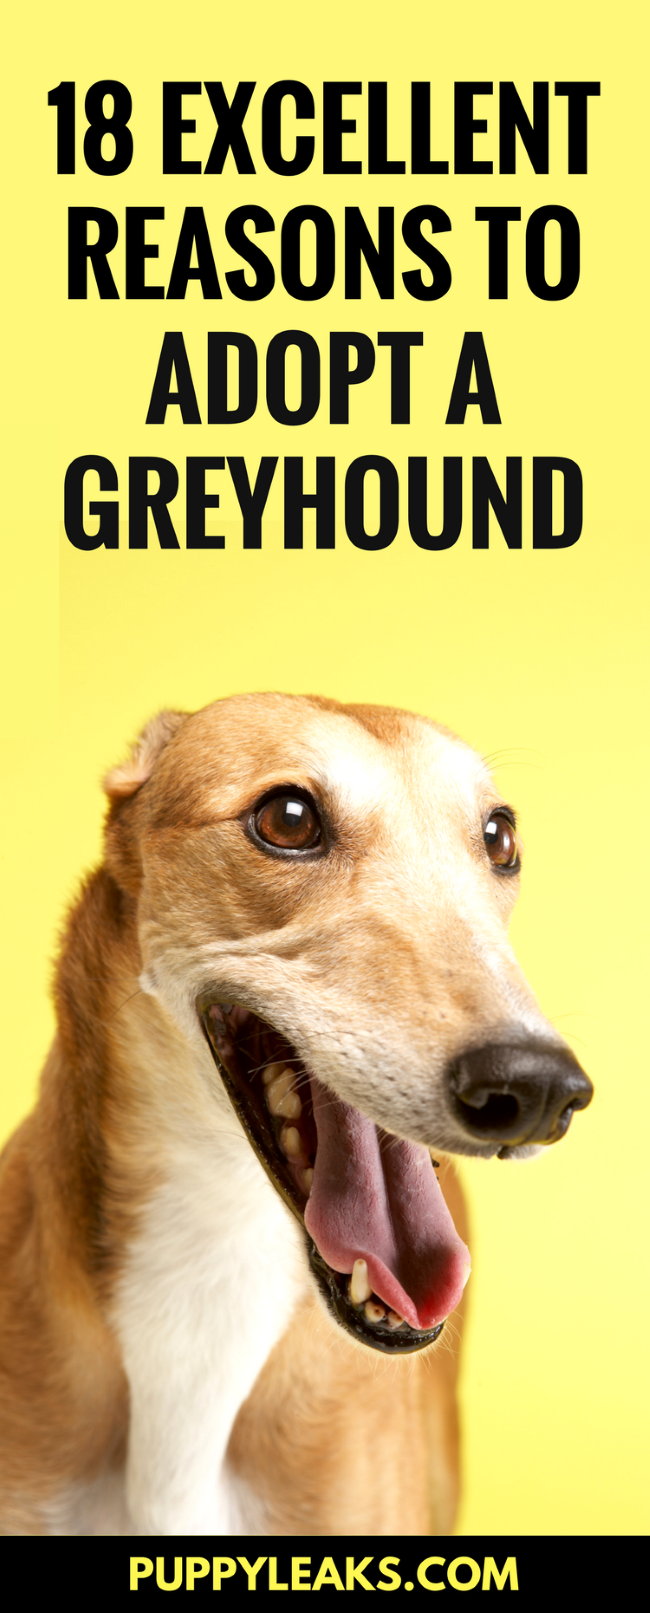 Looking for a laid back dog that's great for apartments? A Greyhound might be the right dog for you.18 Excellent Reasons to Adopt a Greyhound.